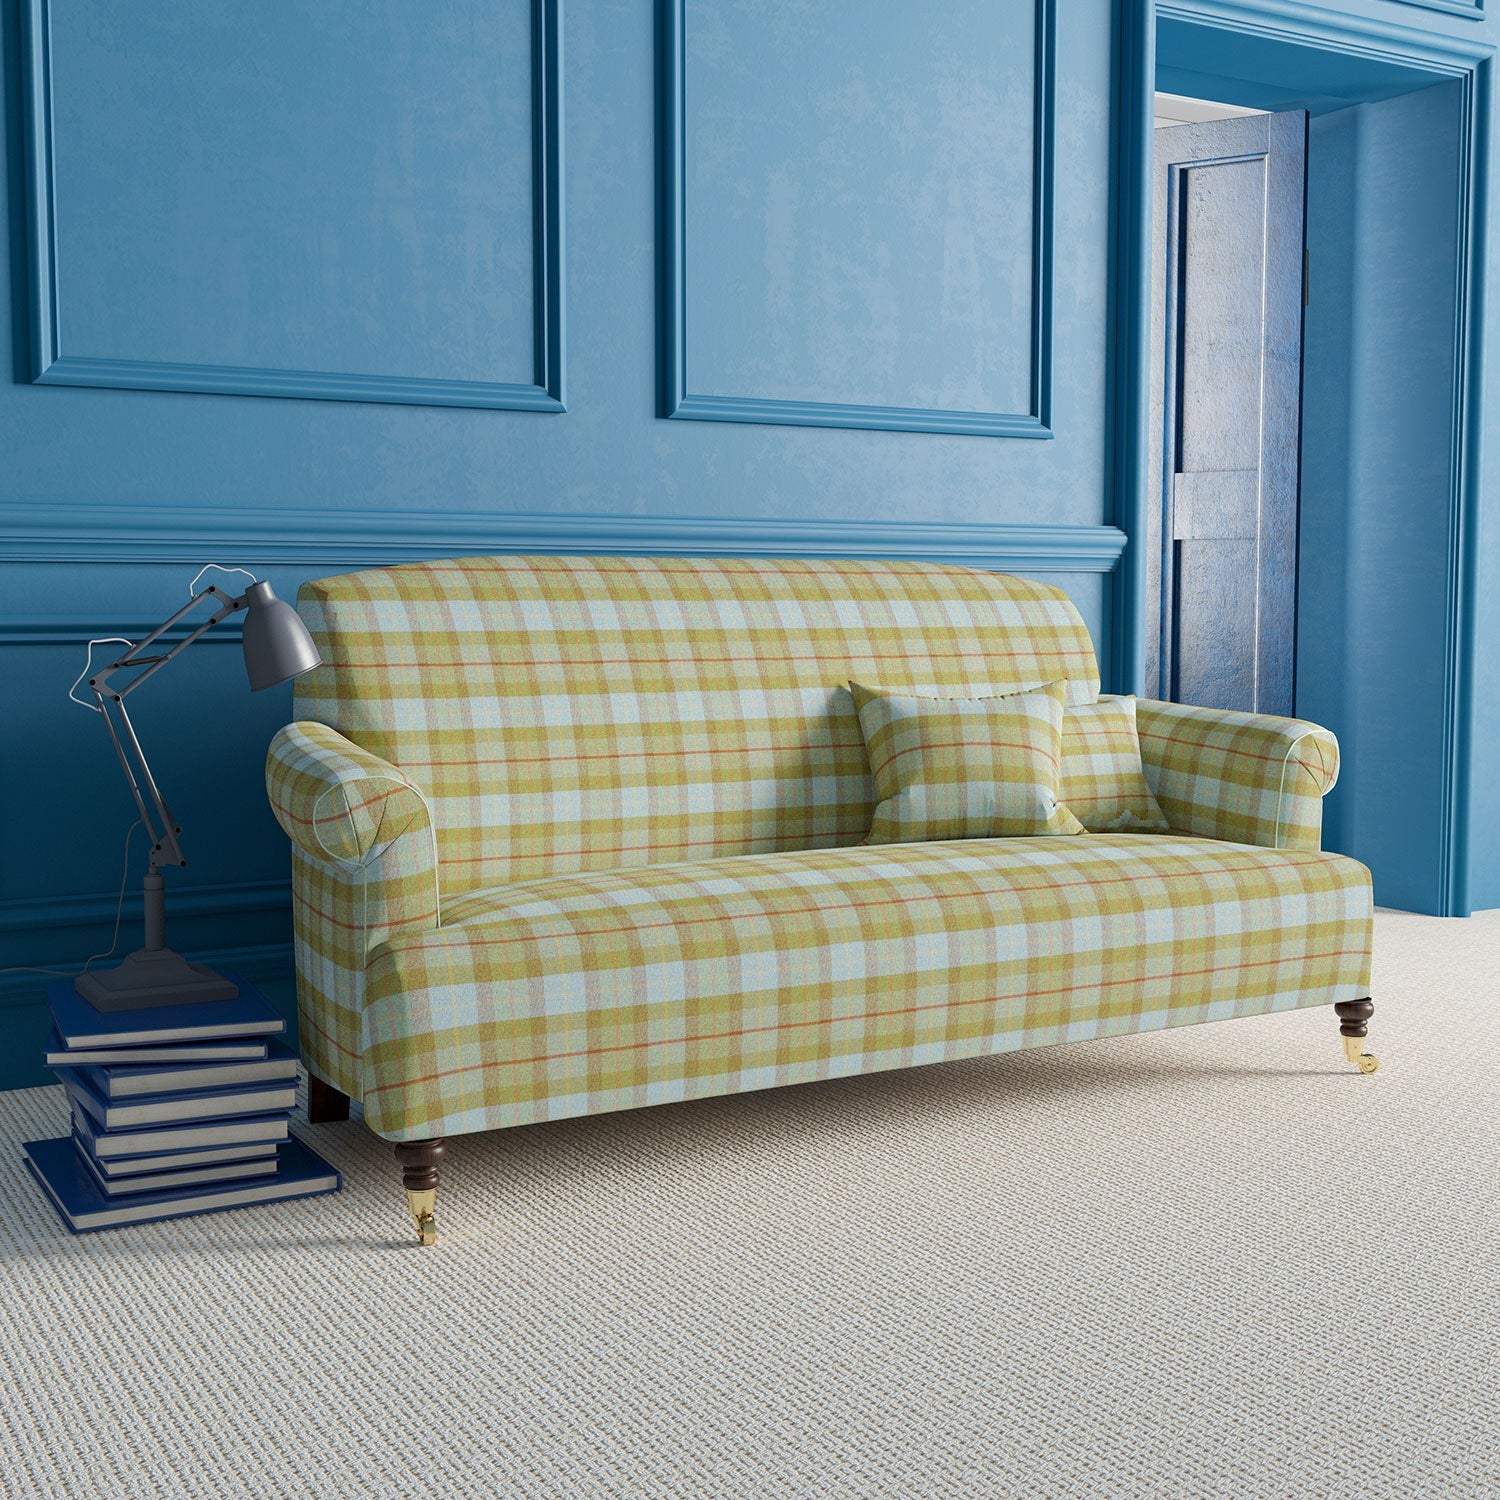 Sofa upholstered in a wool fabric with green and blue plaid design.